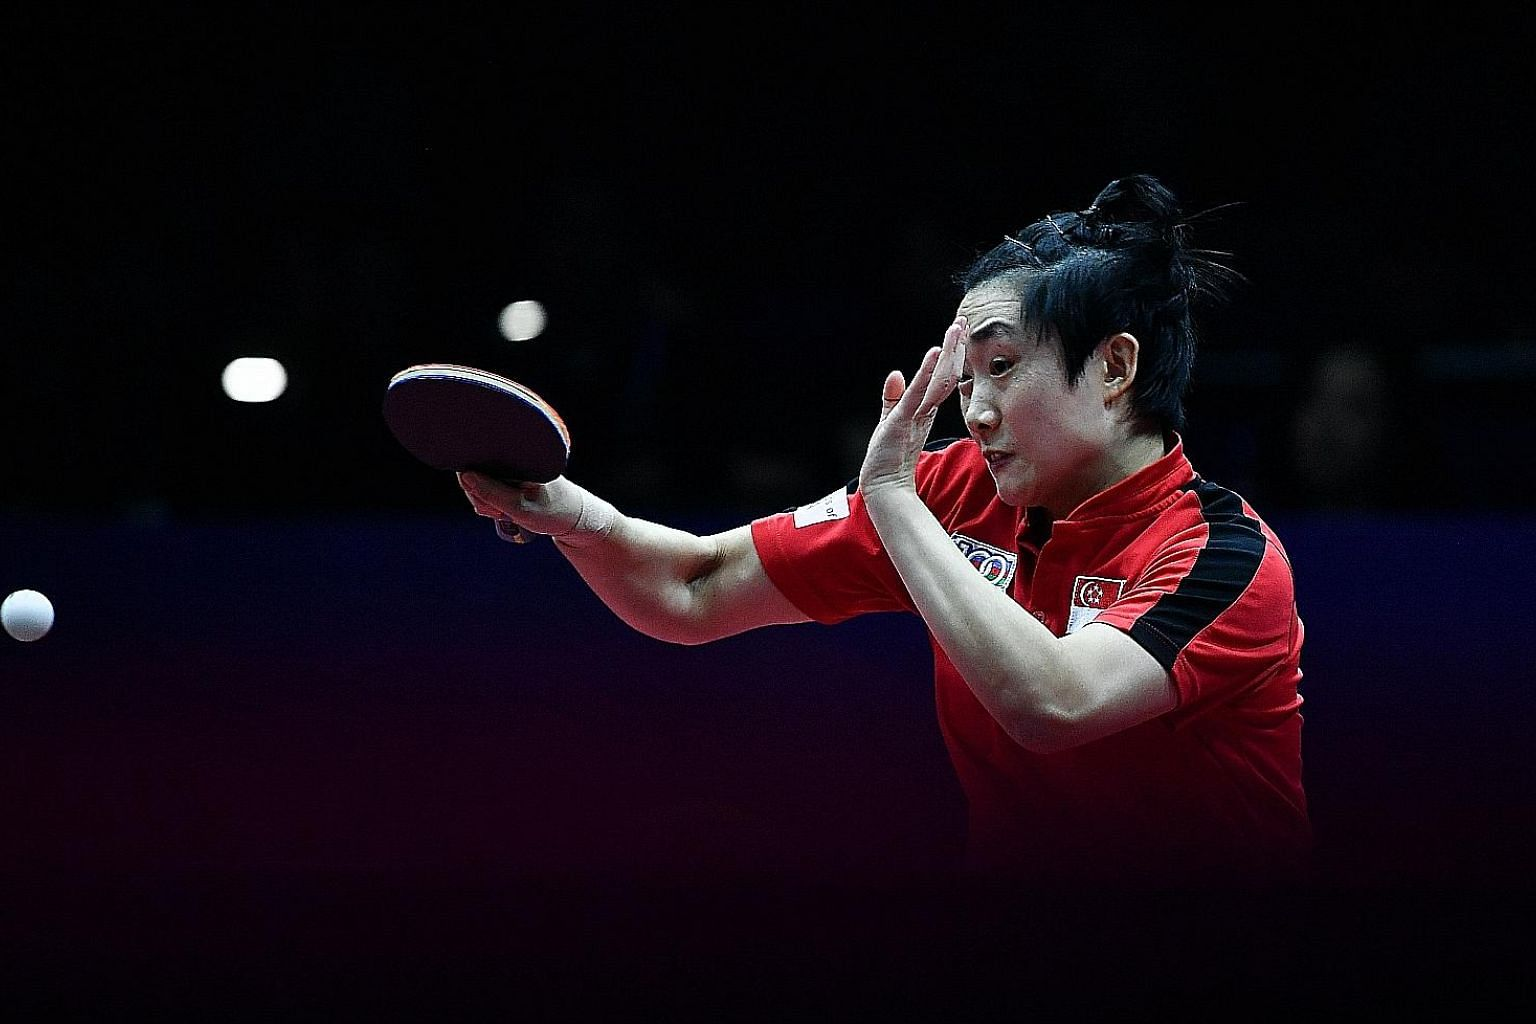 Singapore's Feng Tianwei's revival continued at the Women's World Cup in Chengdu where she beat Japan's world No. 8 Kasumi Ishikawa in the last eight before losing to third-ranked Zhu Yuling of China in the semi-finals.